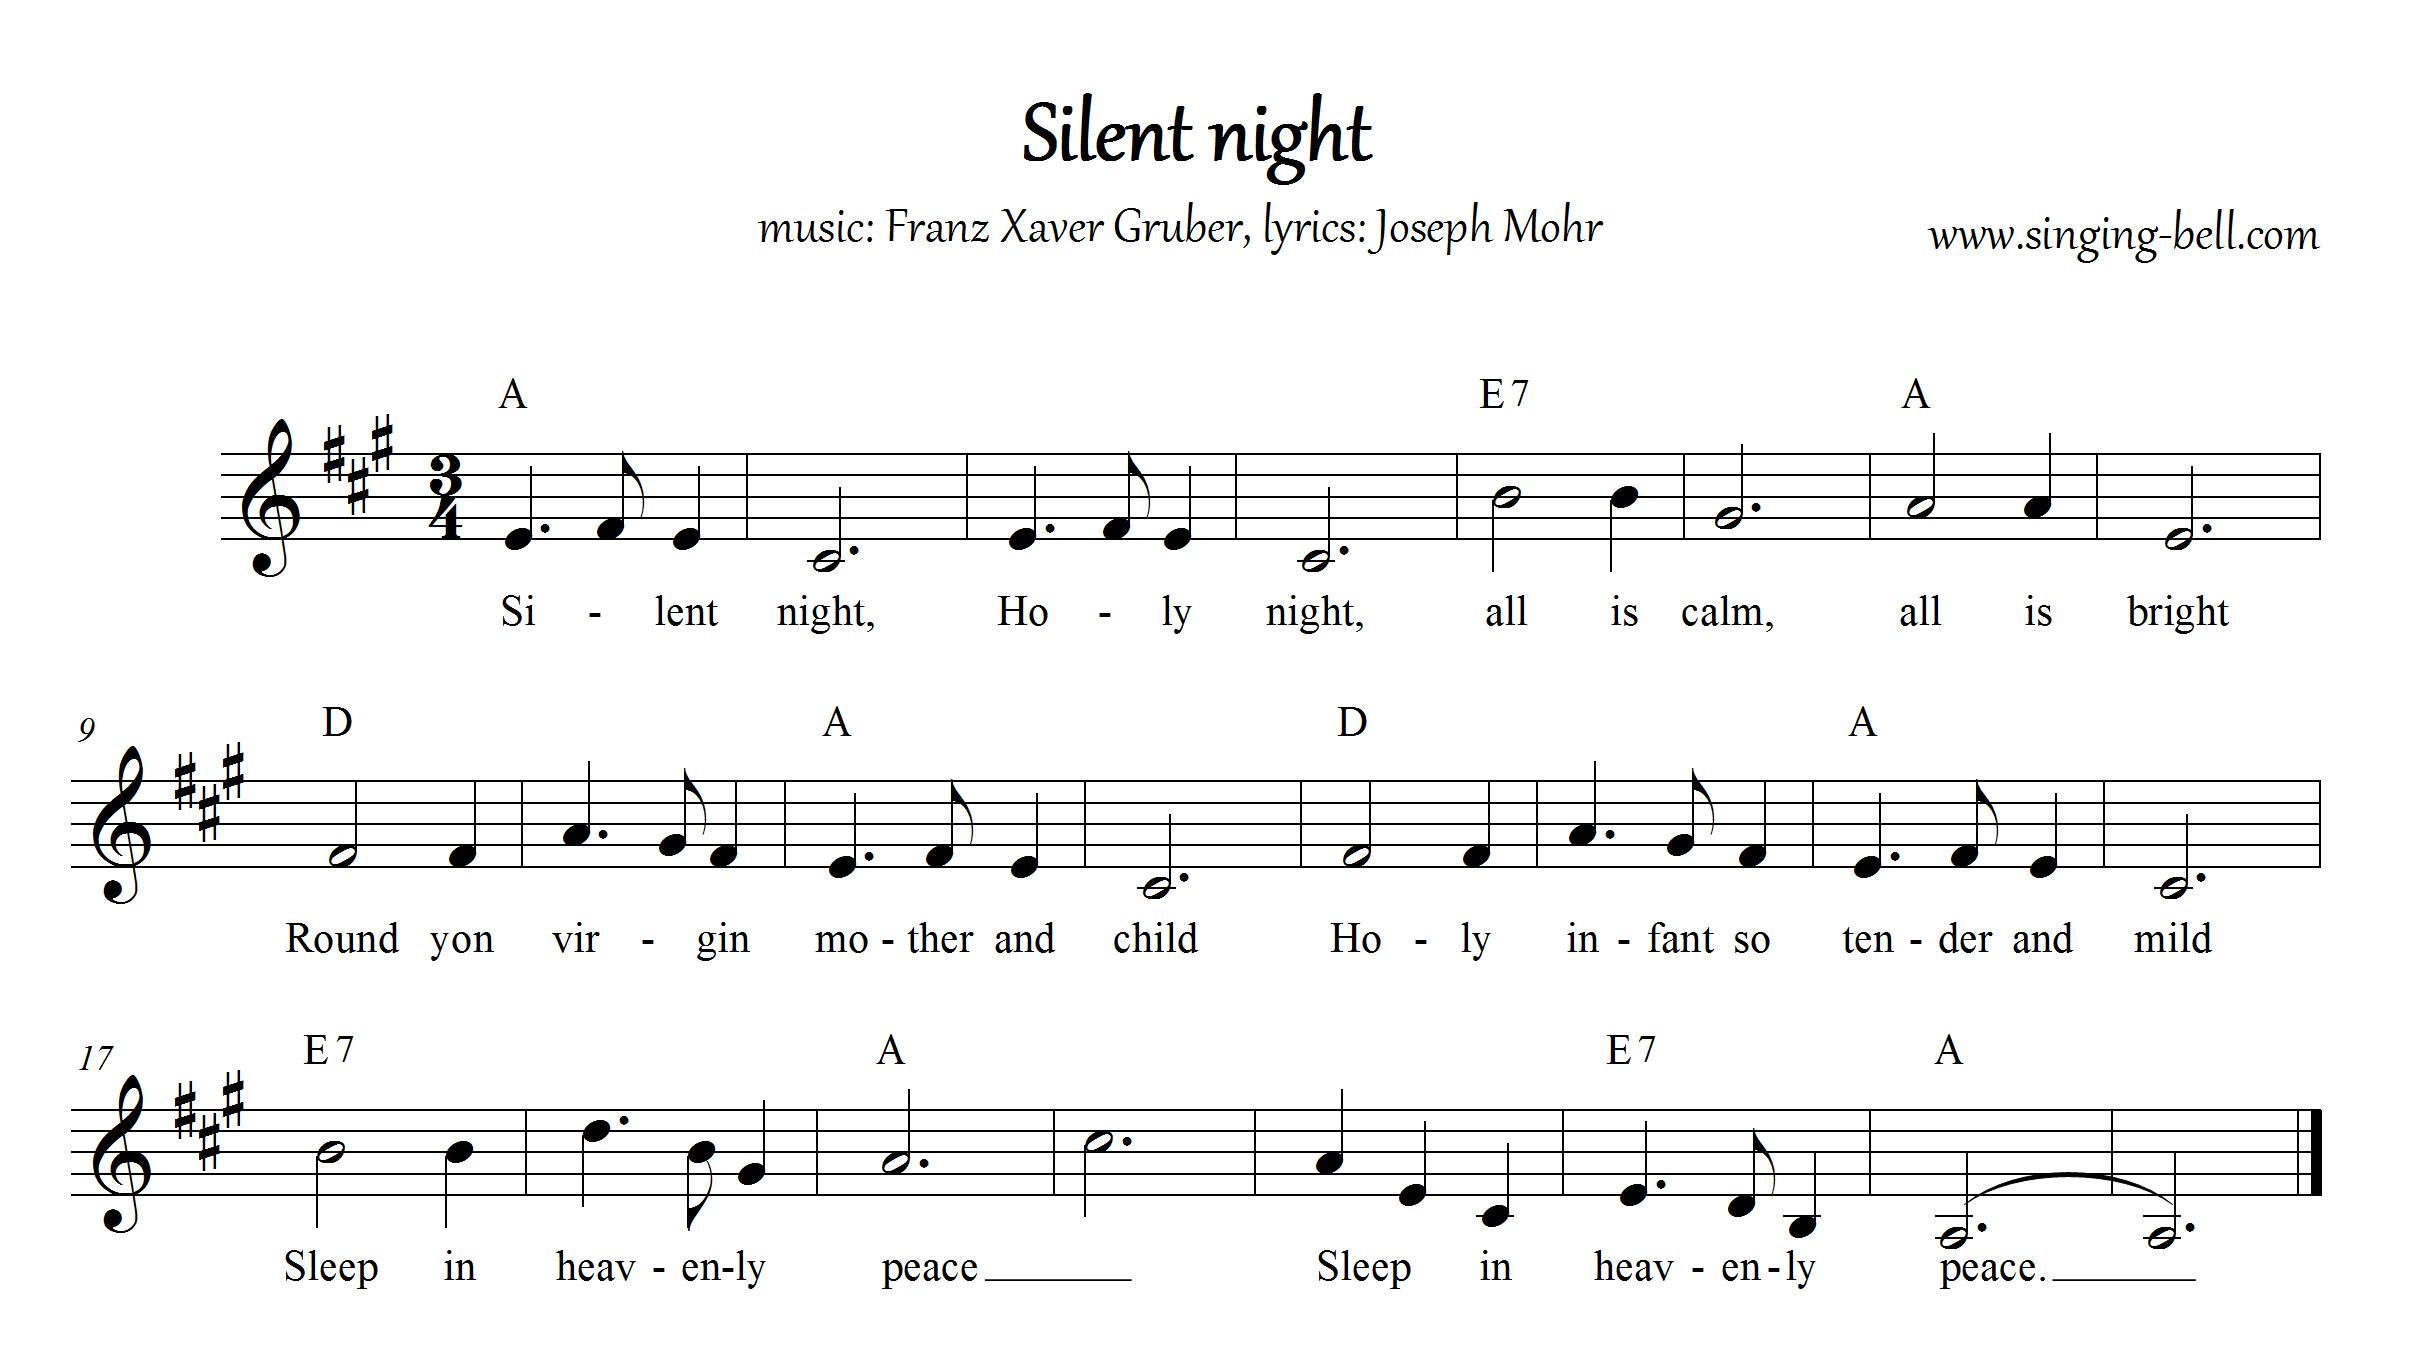 Silent Night - Christmas Music Score (in A)